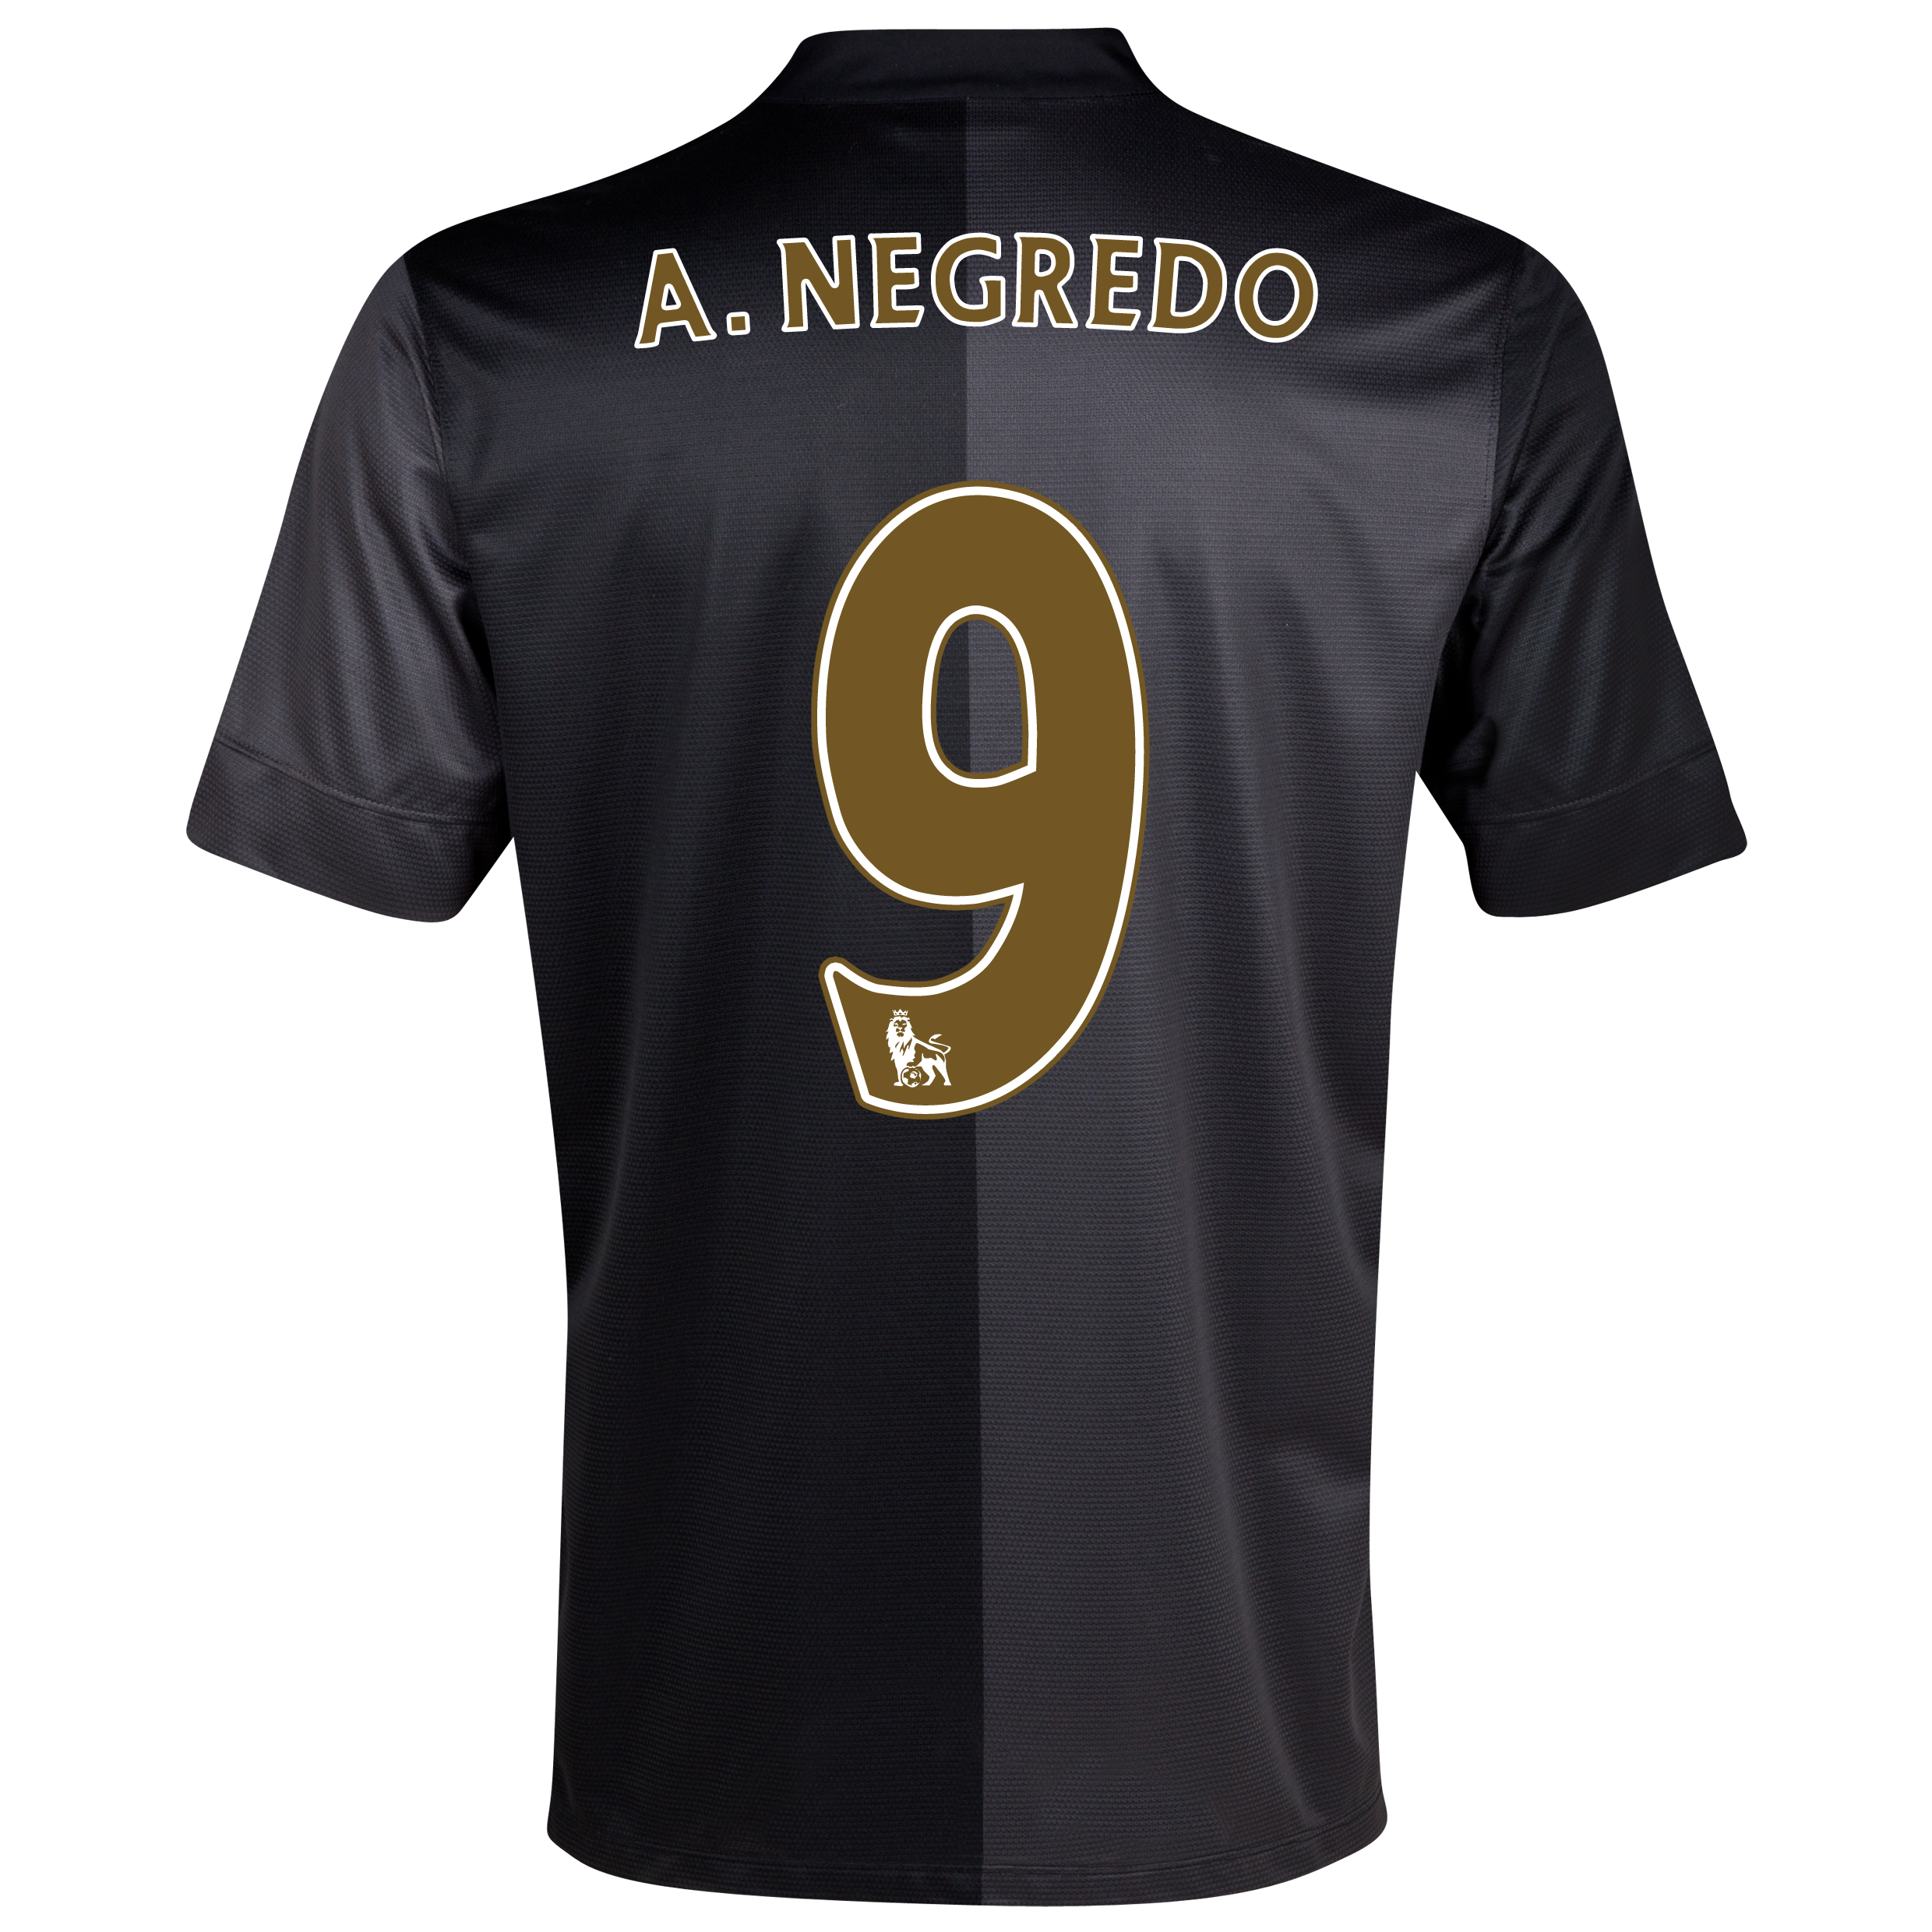 A.Negredo 9 Hero shirts